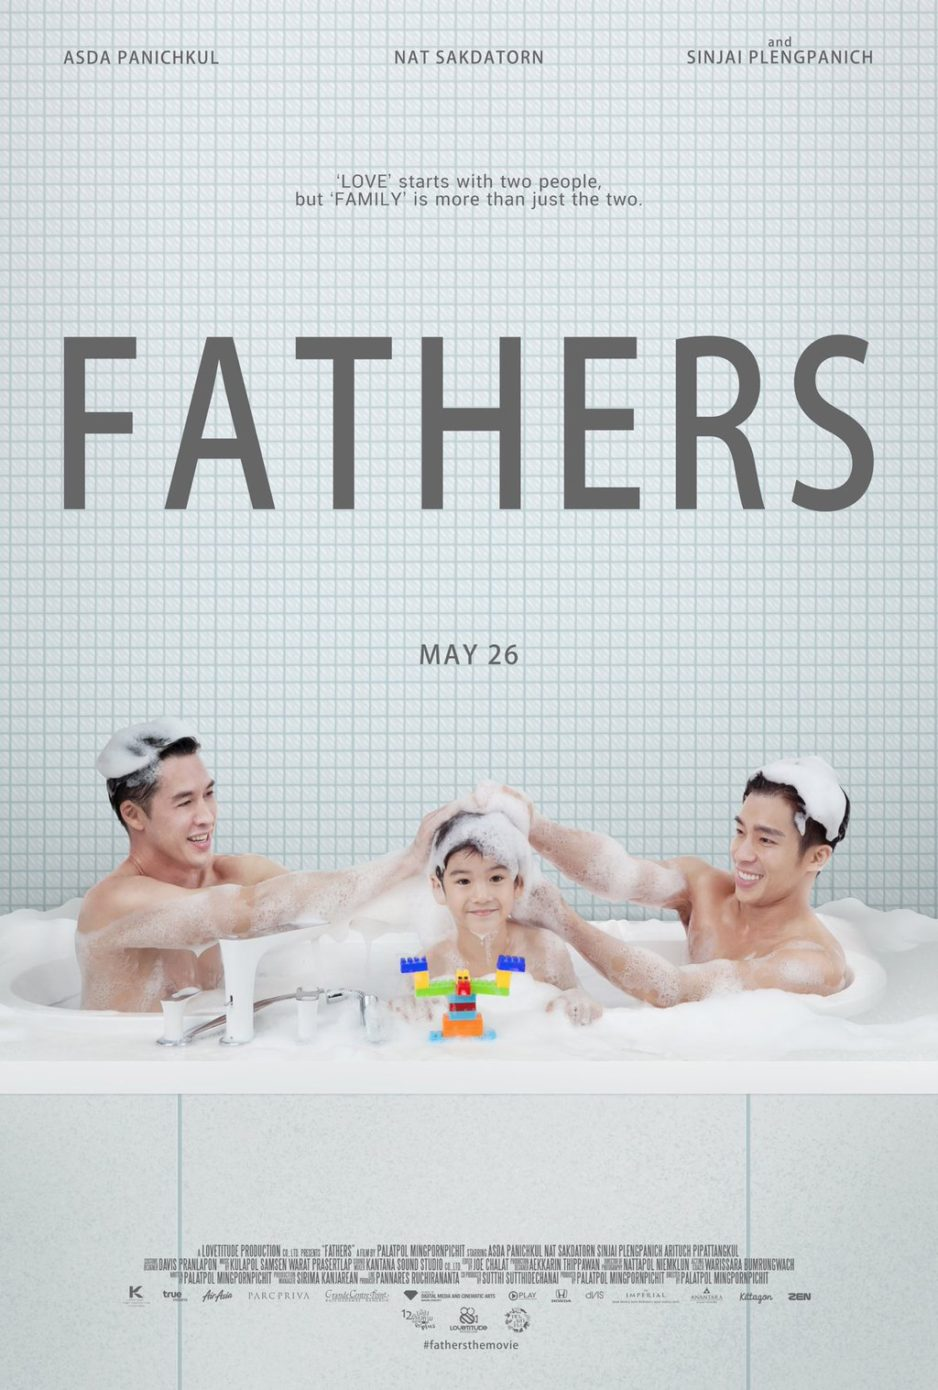 Fathers - series boys love